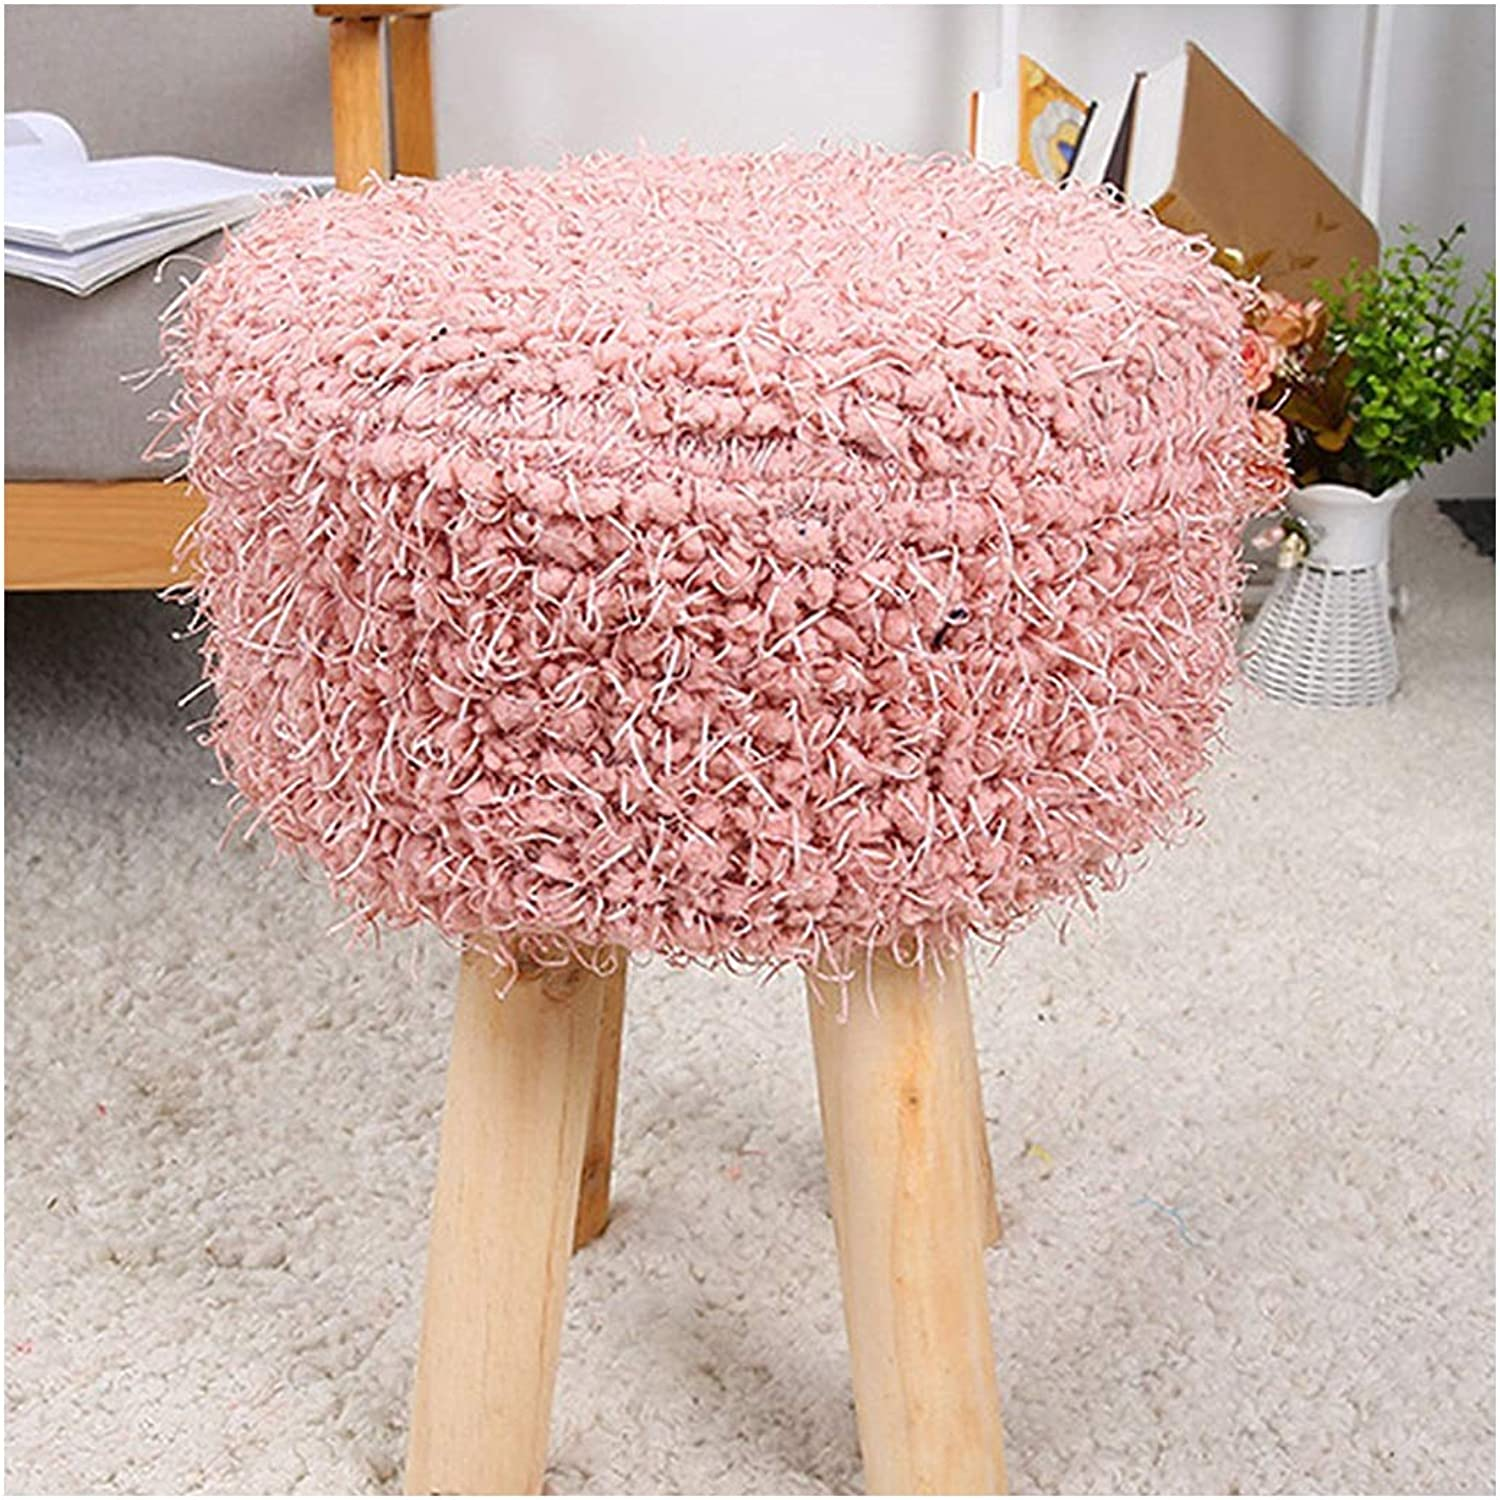 Four-Foot Stool Hair Change shoes Stool Low Stool Home Round Stool Plush Stool Simple Solid Wood 30  30  45CM (color   2, Size   30  30  45CM)